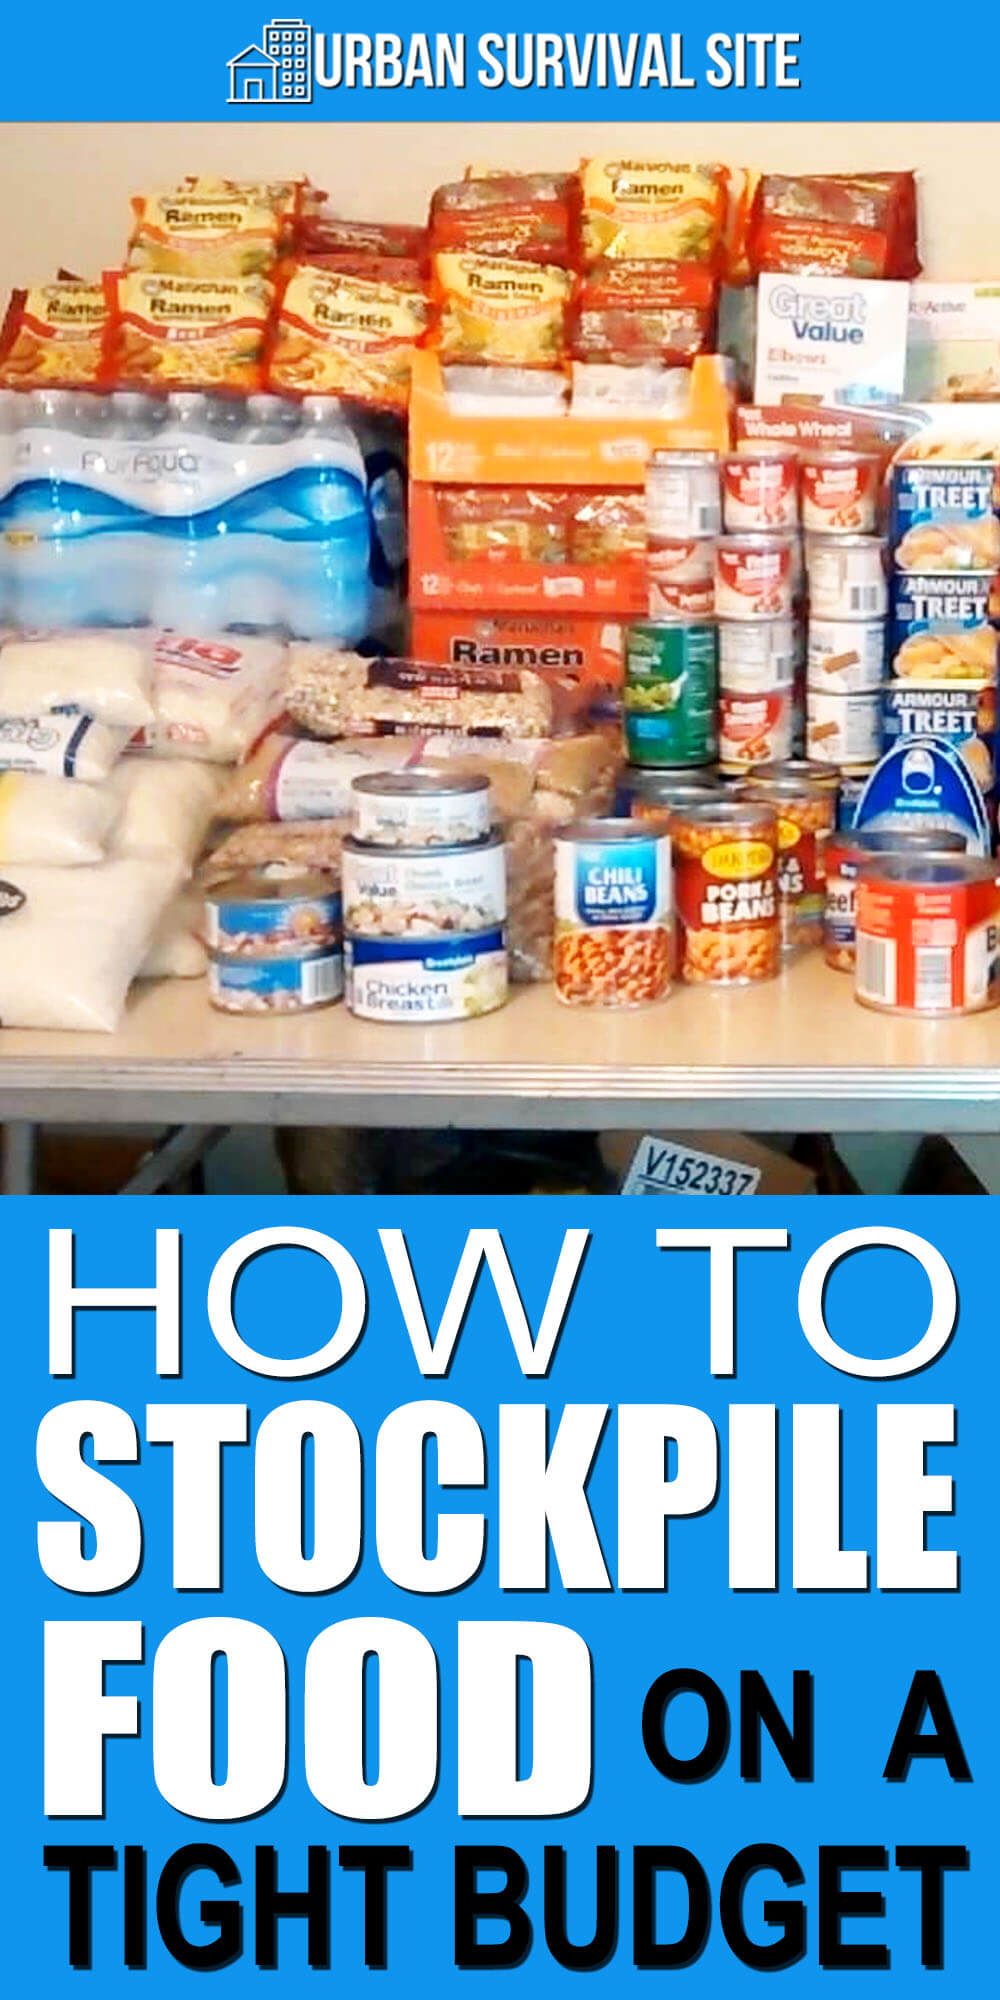 How To Stockpile Food On A Tight Budget